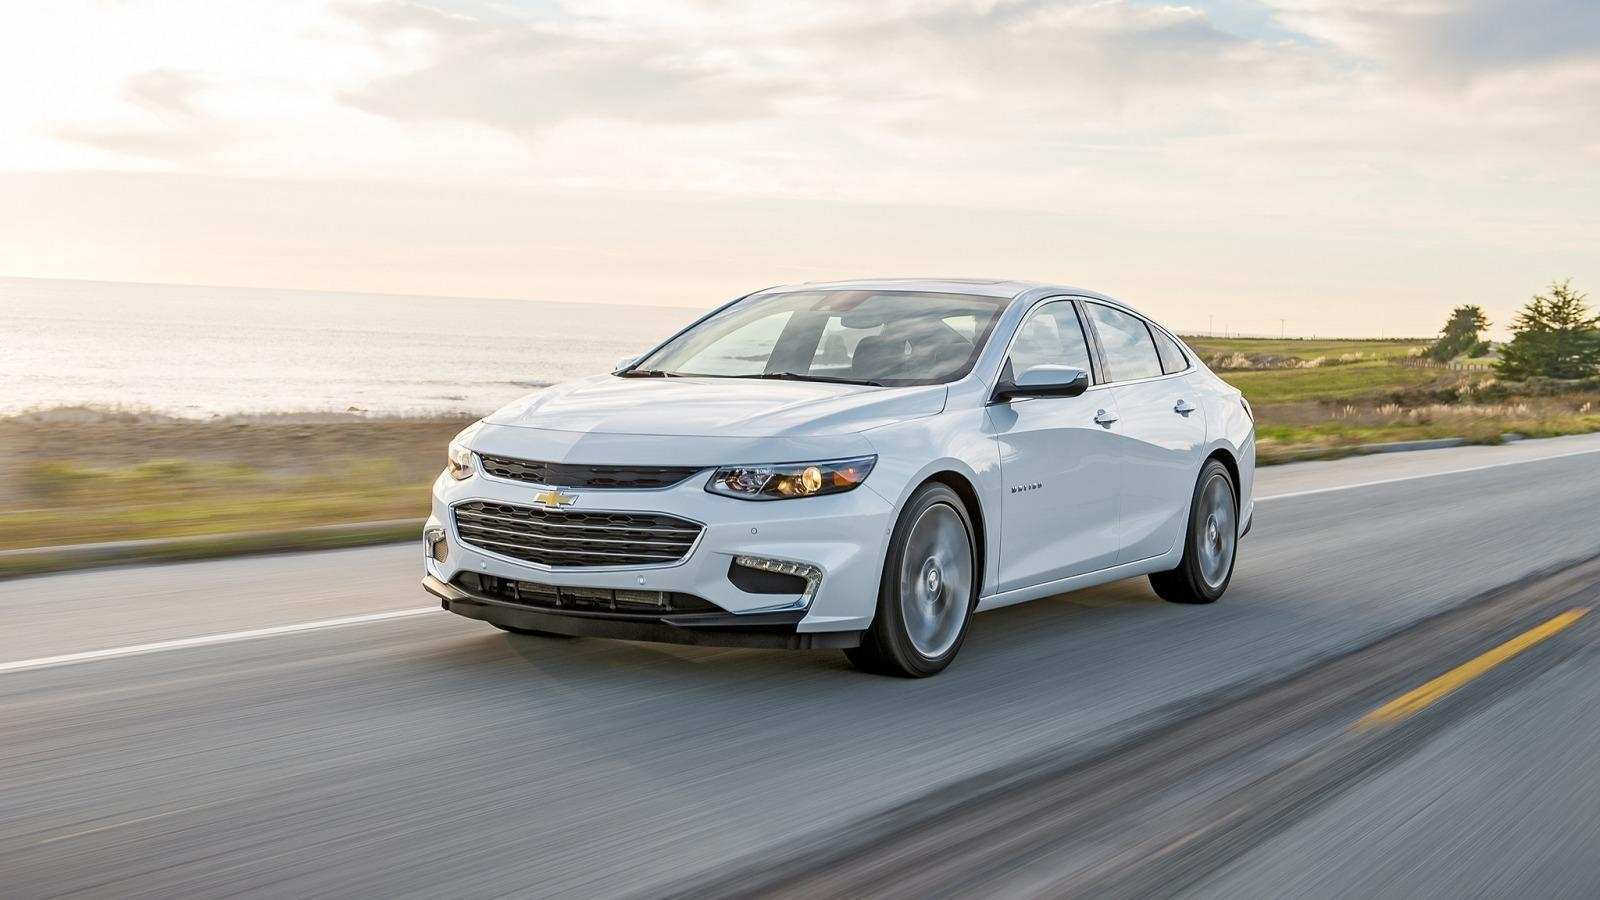 77 Concept of New Chevrolet Malibu 2019 Release Date Exterior And Interior Review Specs and Review with New Chevrolet Malibu 2019 Release Date Exterior And Interior Review